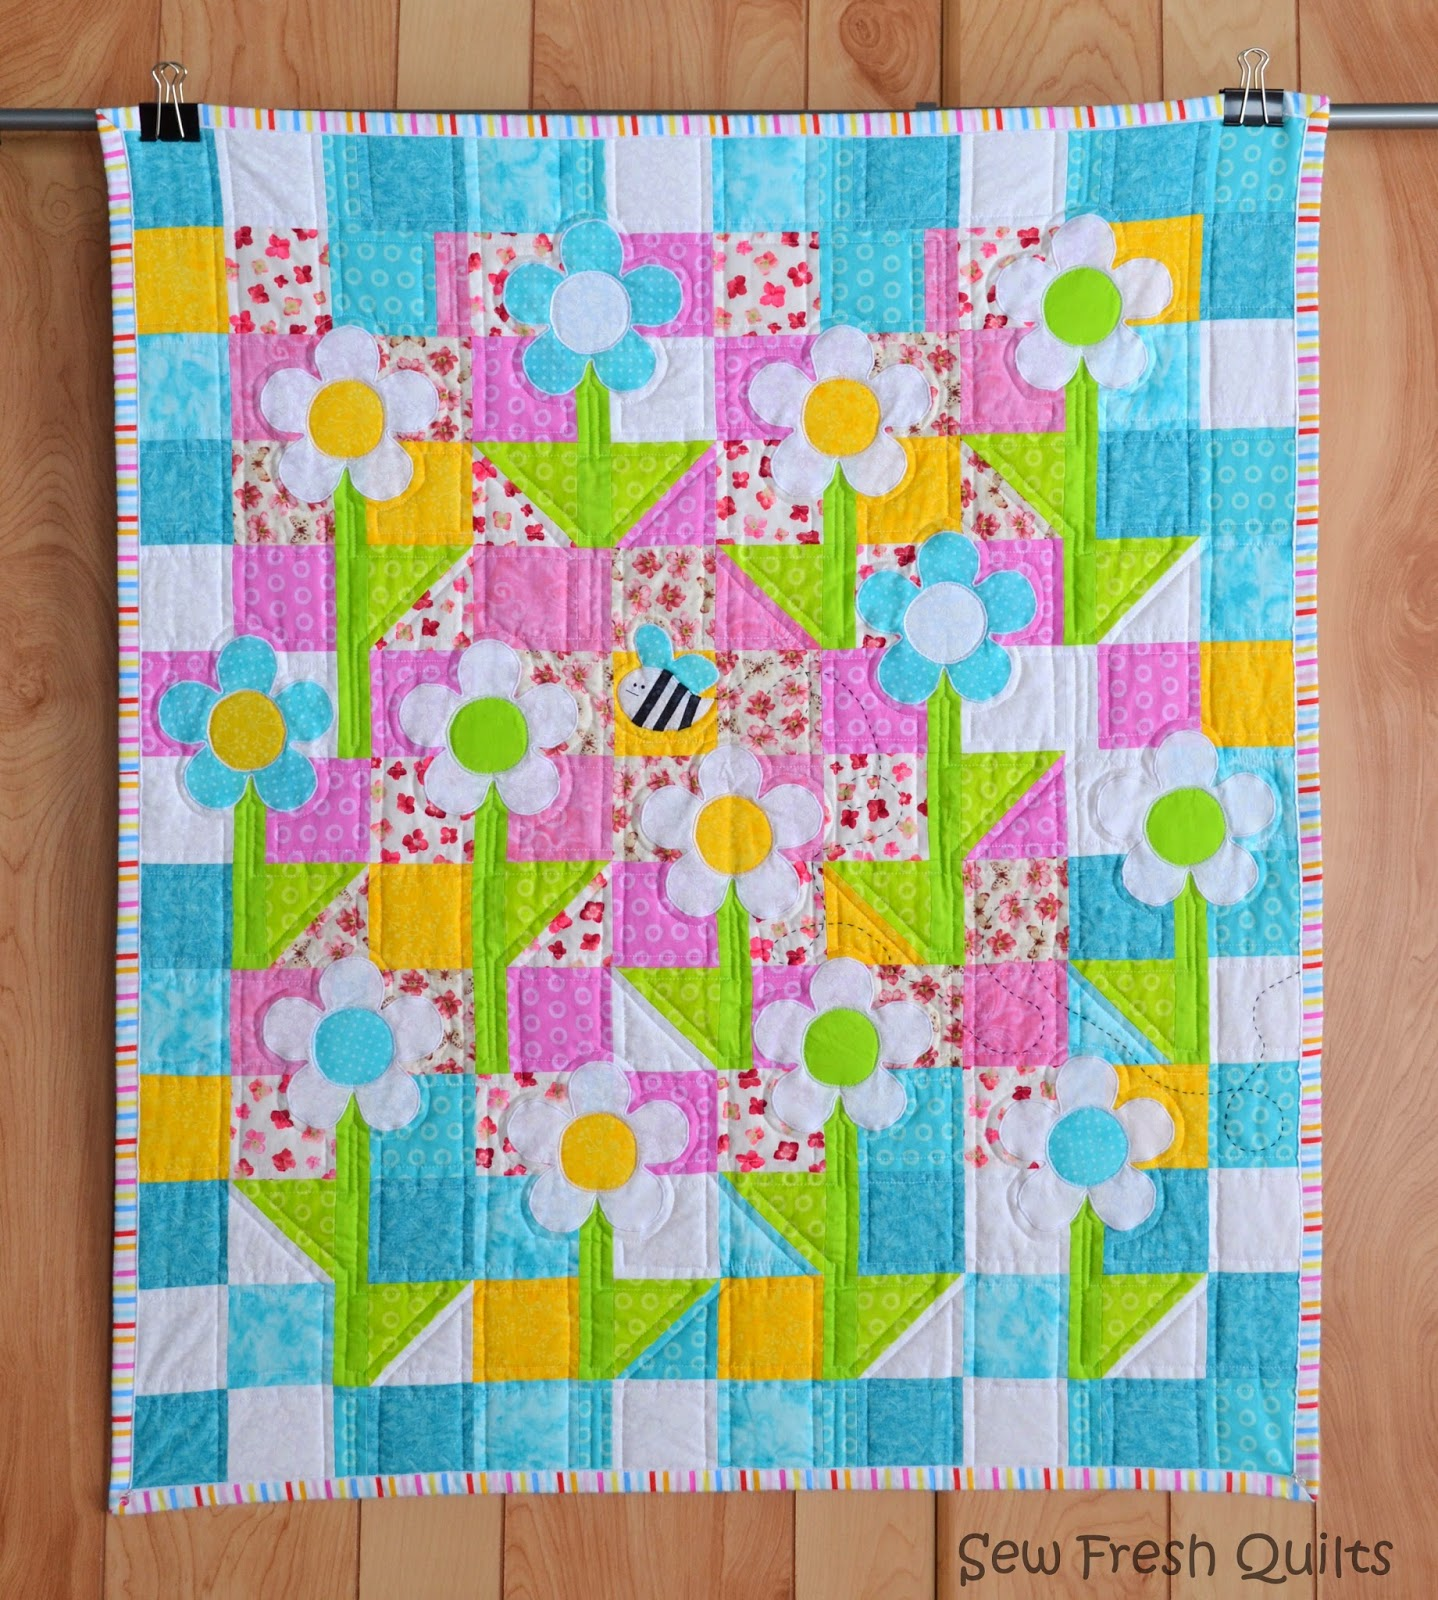 http://sewfreshquilts.blogspot.ca/search/label/spring